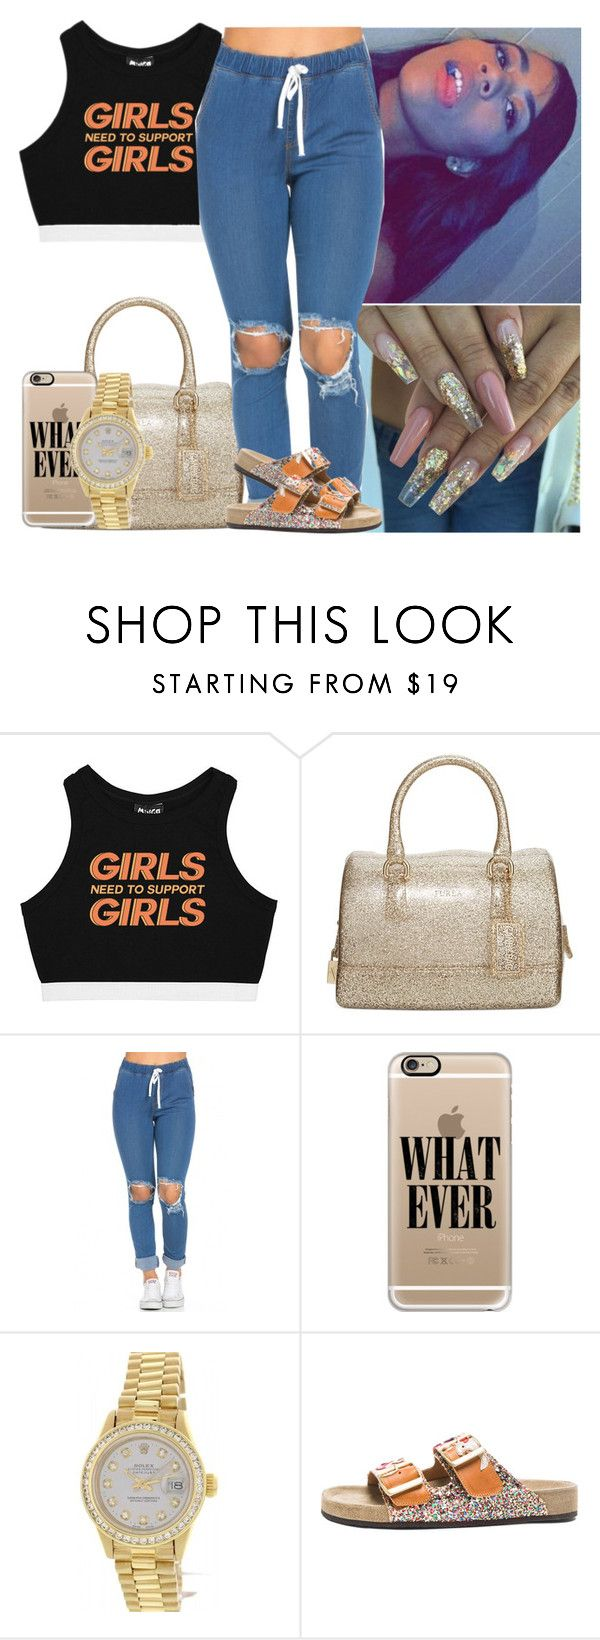 """..."" by melaninmonroee ❤ liked on Polyvore featuring Minga, Furla, Casetify, Rolex and Isabel Marant"